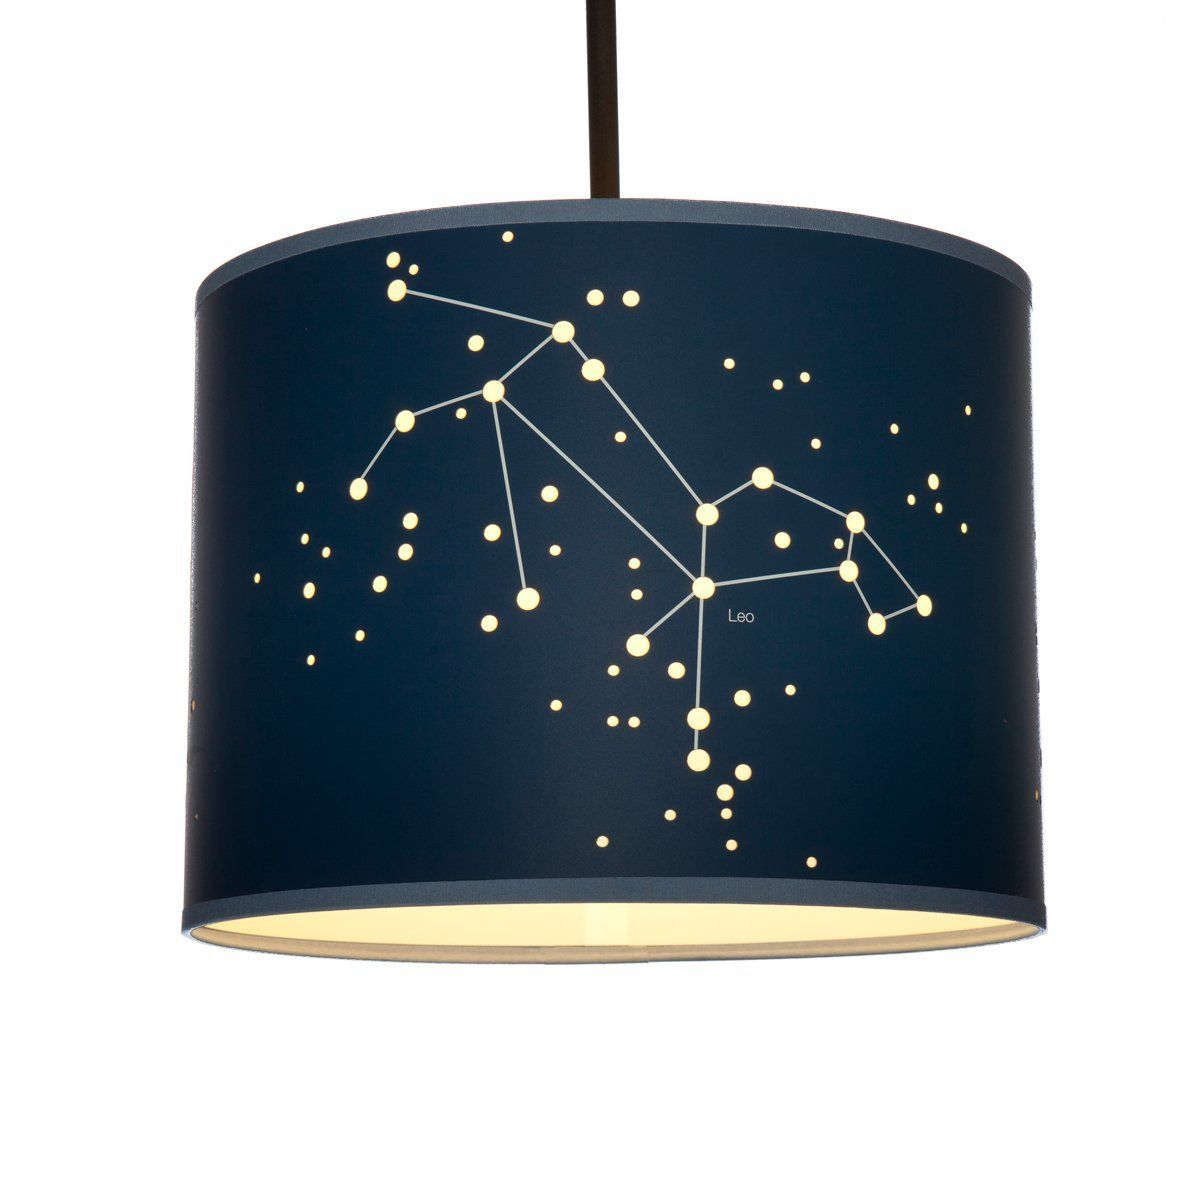 Constellation Large Lampshade By Twocreate Amazon Co Uk Lighting Lamp Shades Constellation Lamp Constellation Lampshade